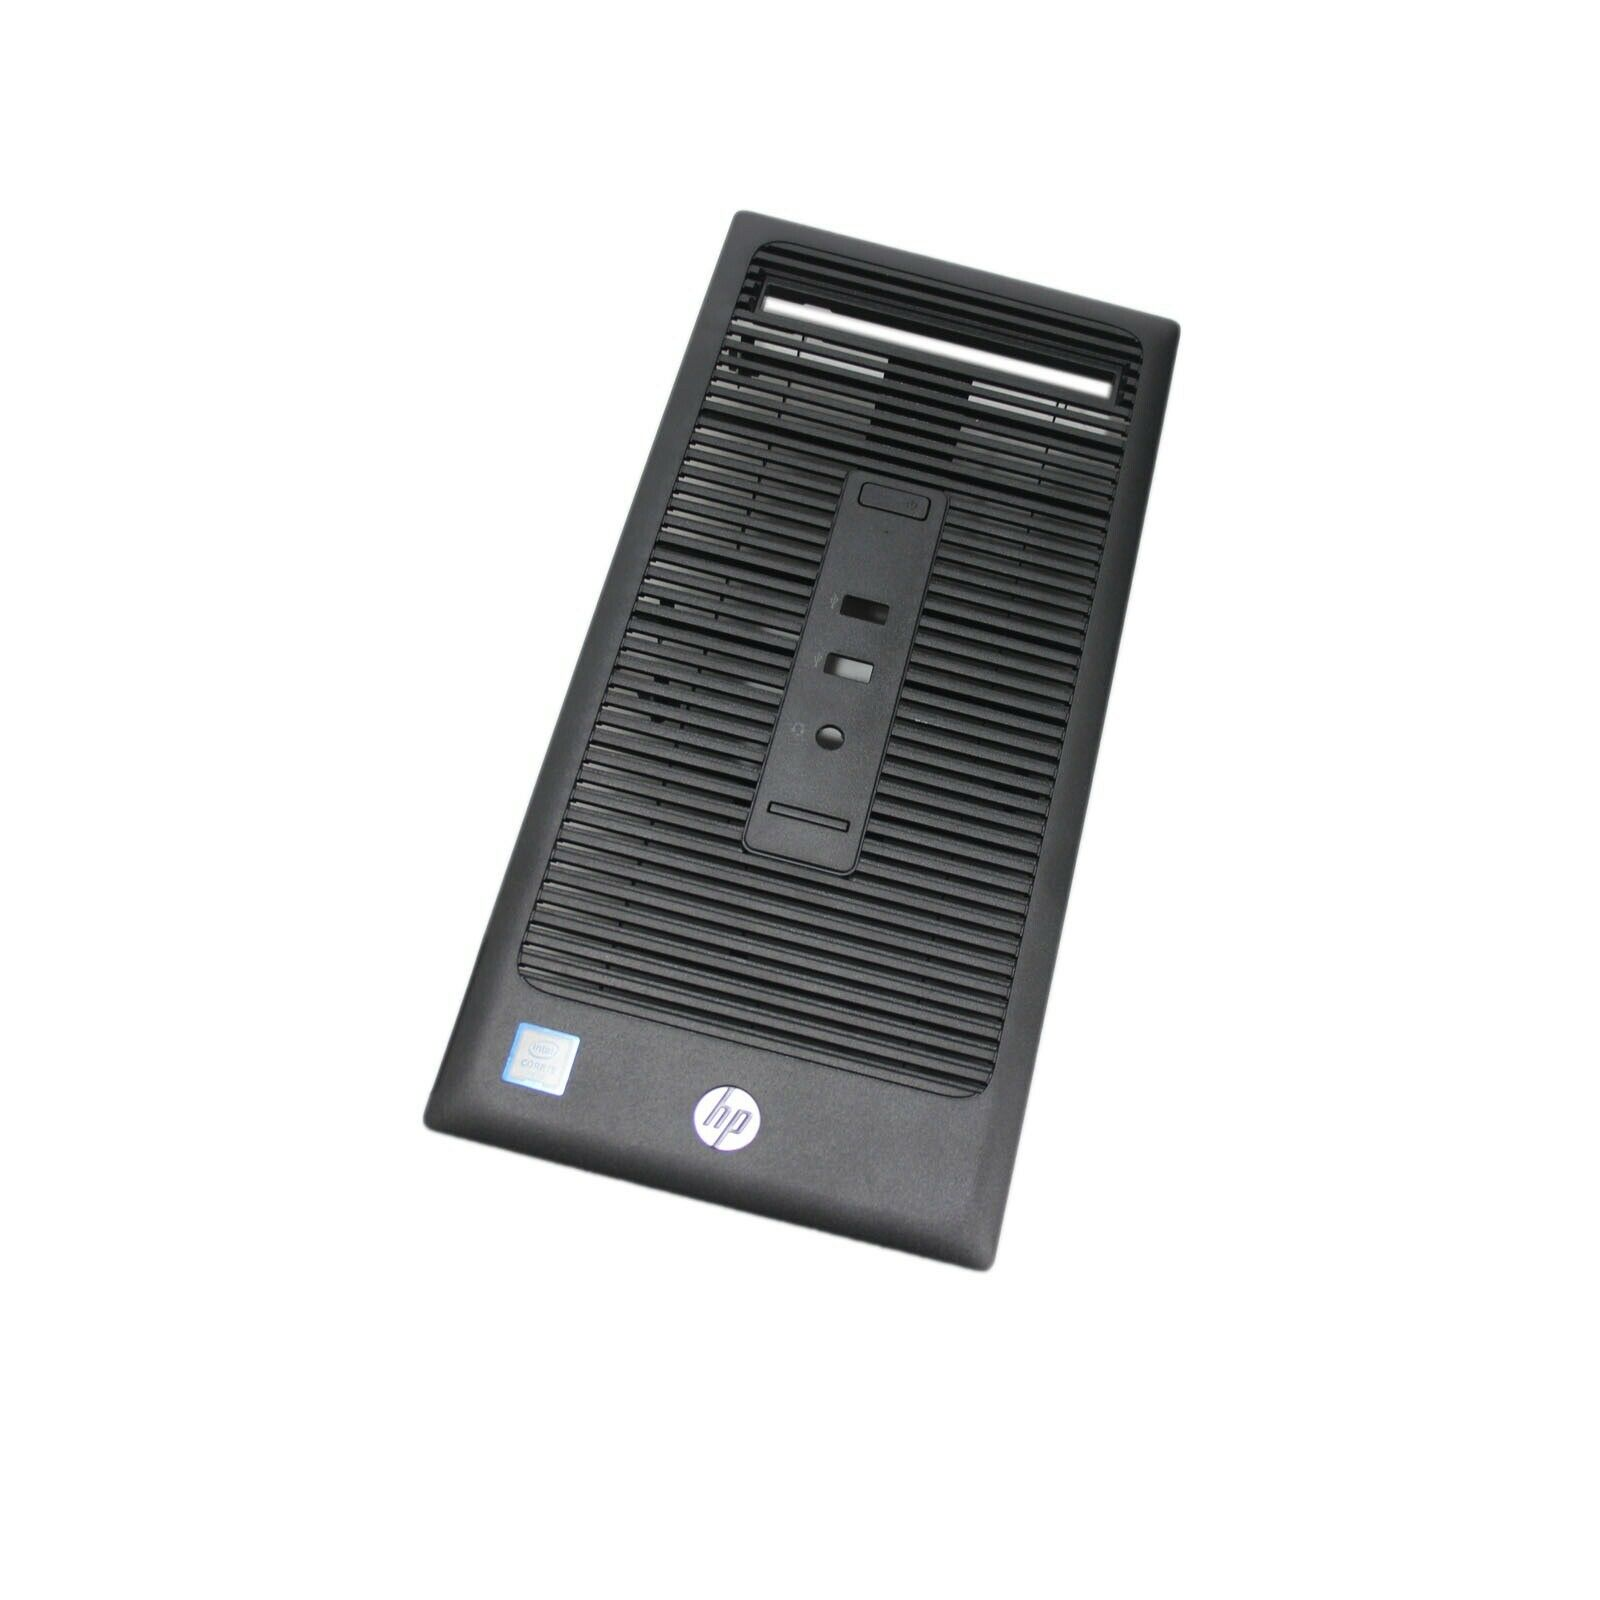 HP 280 G2 SFF Small Form Factor Business Pc  Intel I5-6500